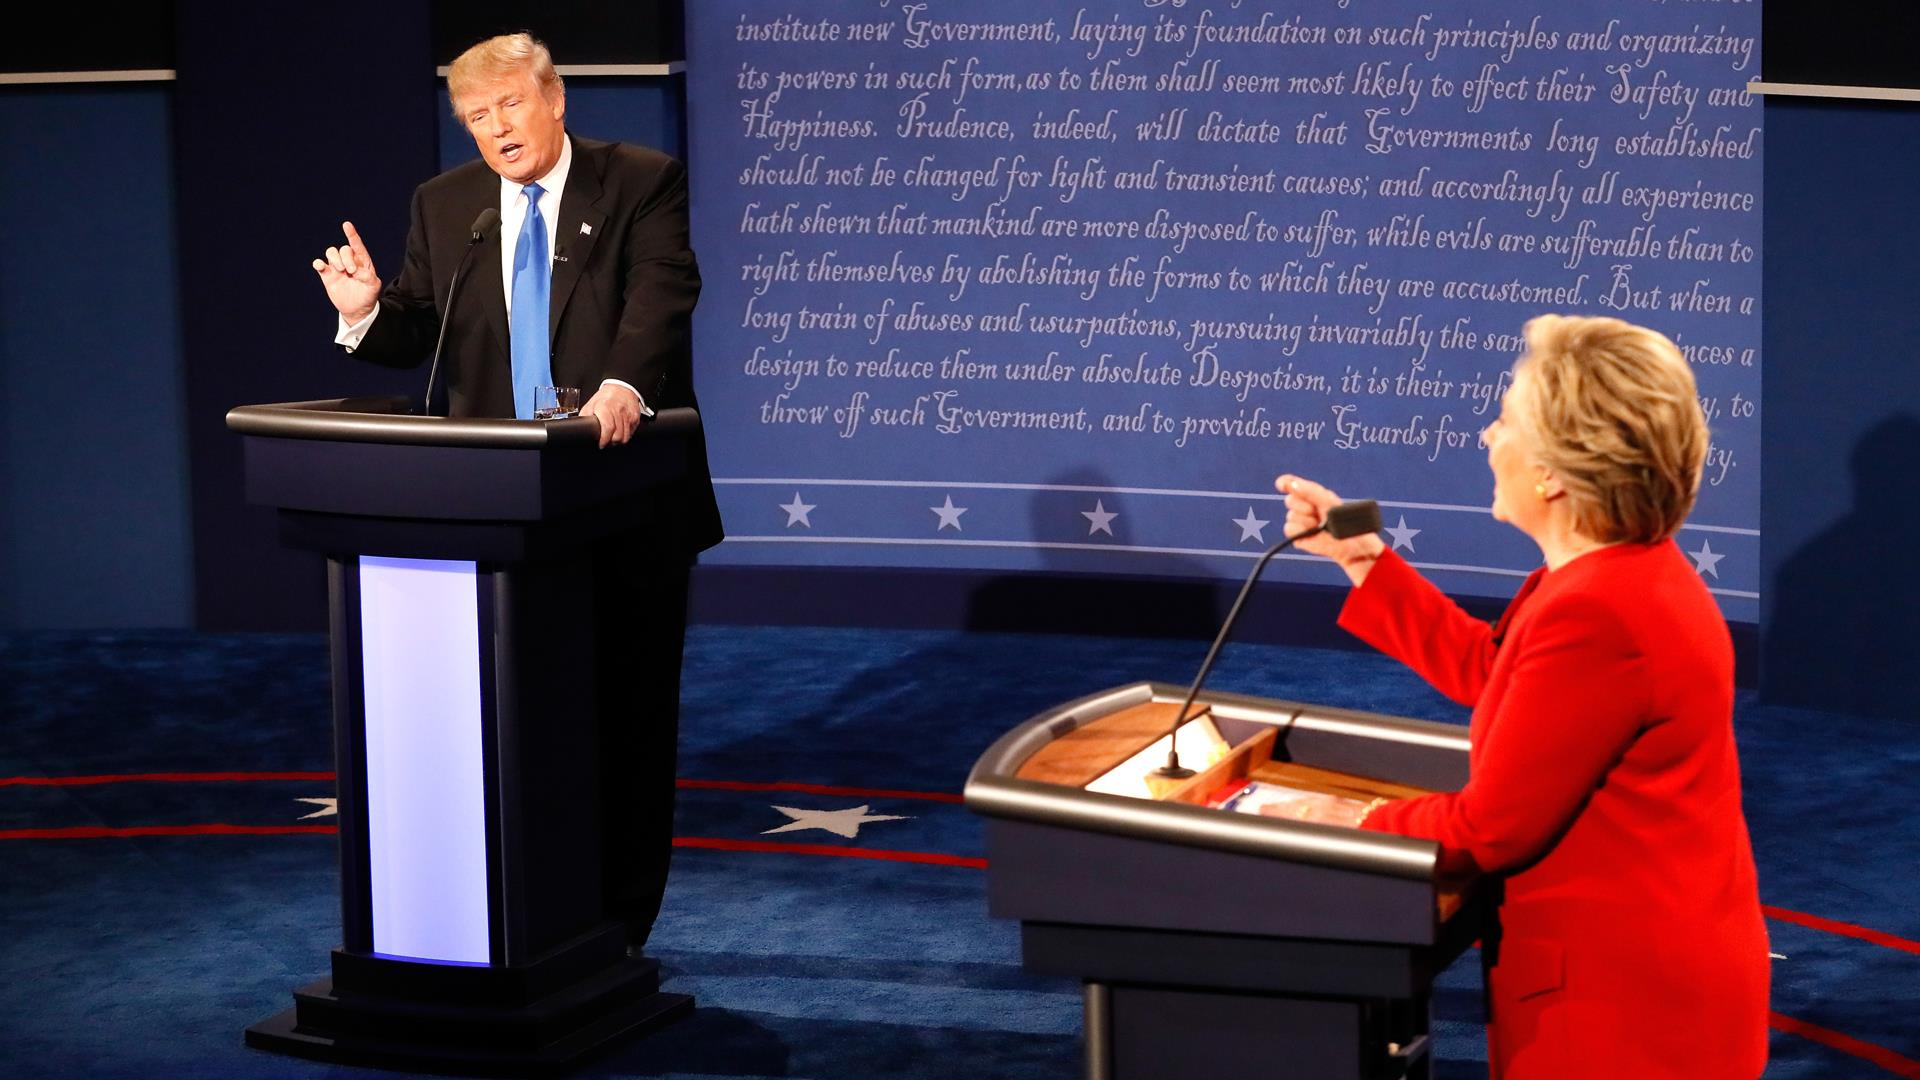 http://media2.s-nbcnews.com/i/MSNBC/Components/Video/201609/a_ov_Debate1Insults_160927.jpg